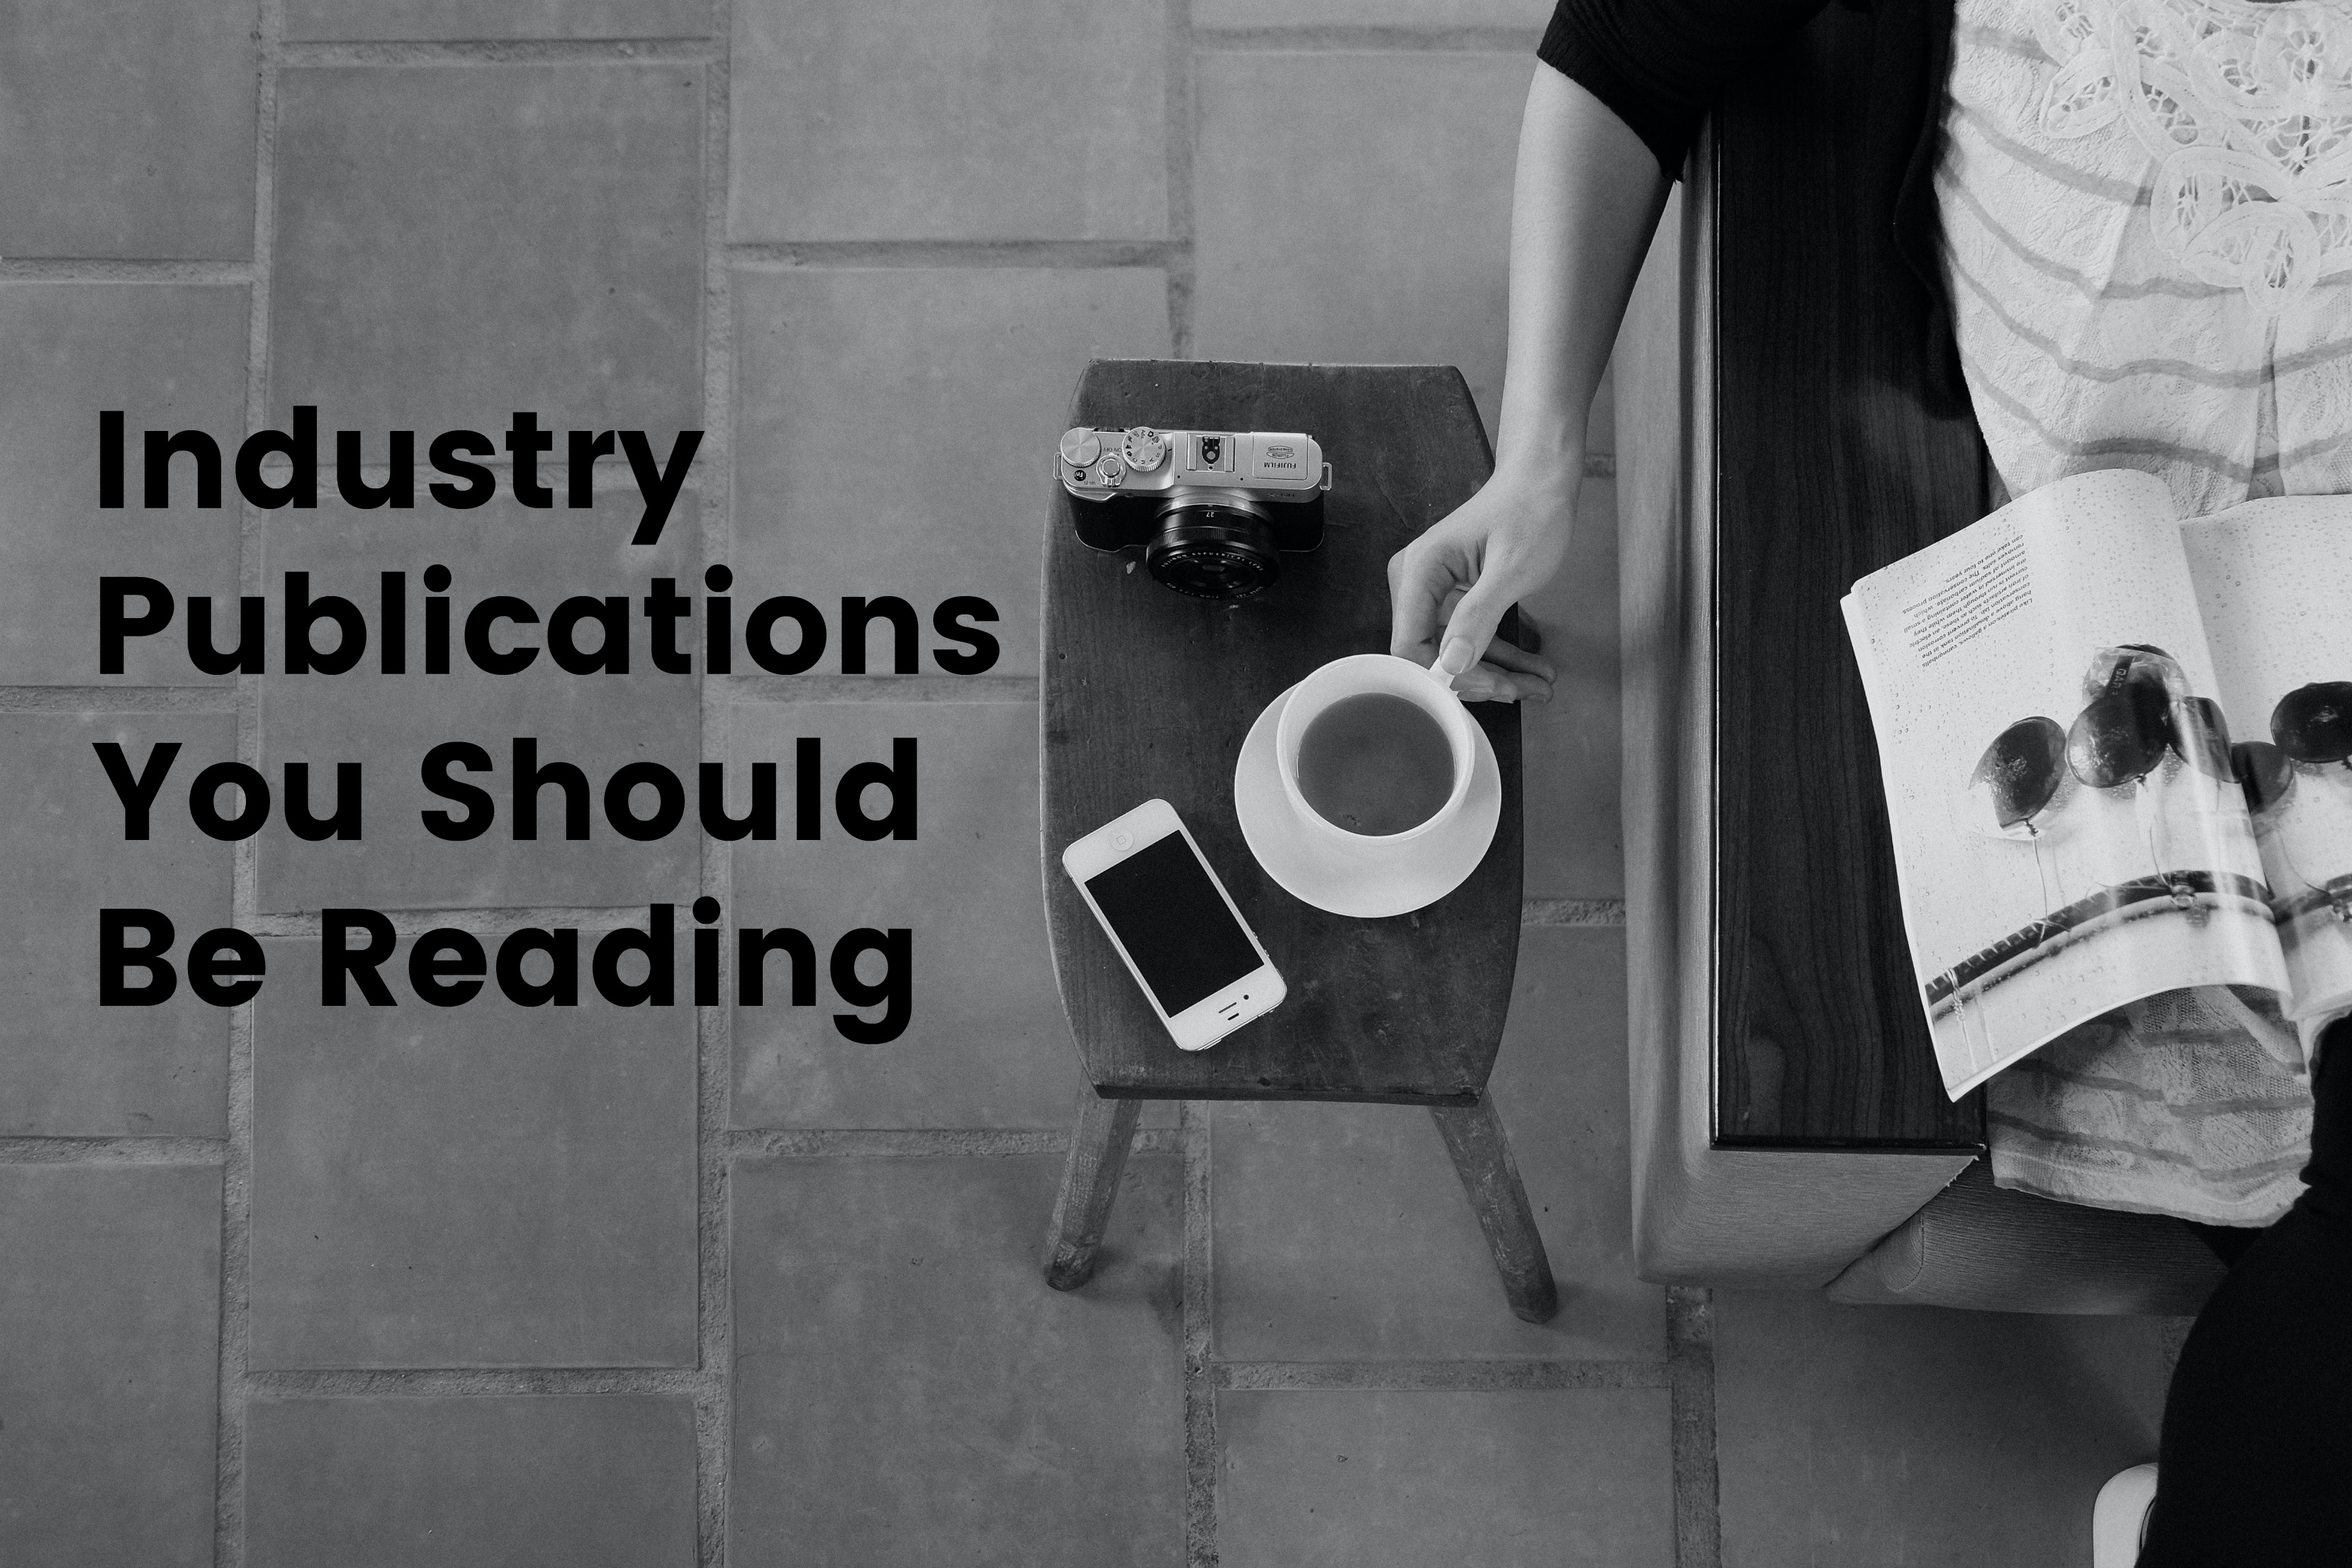 Industry Publications You Should Be Reading